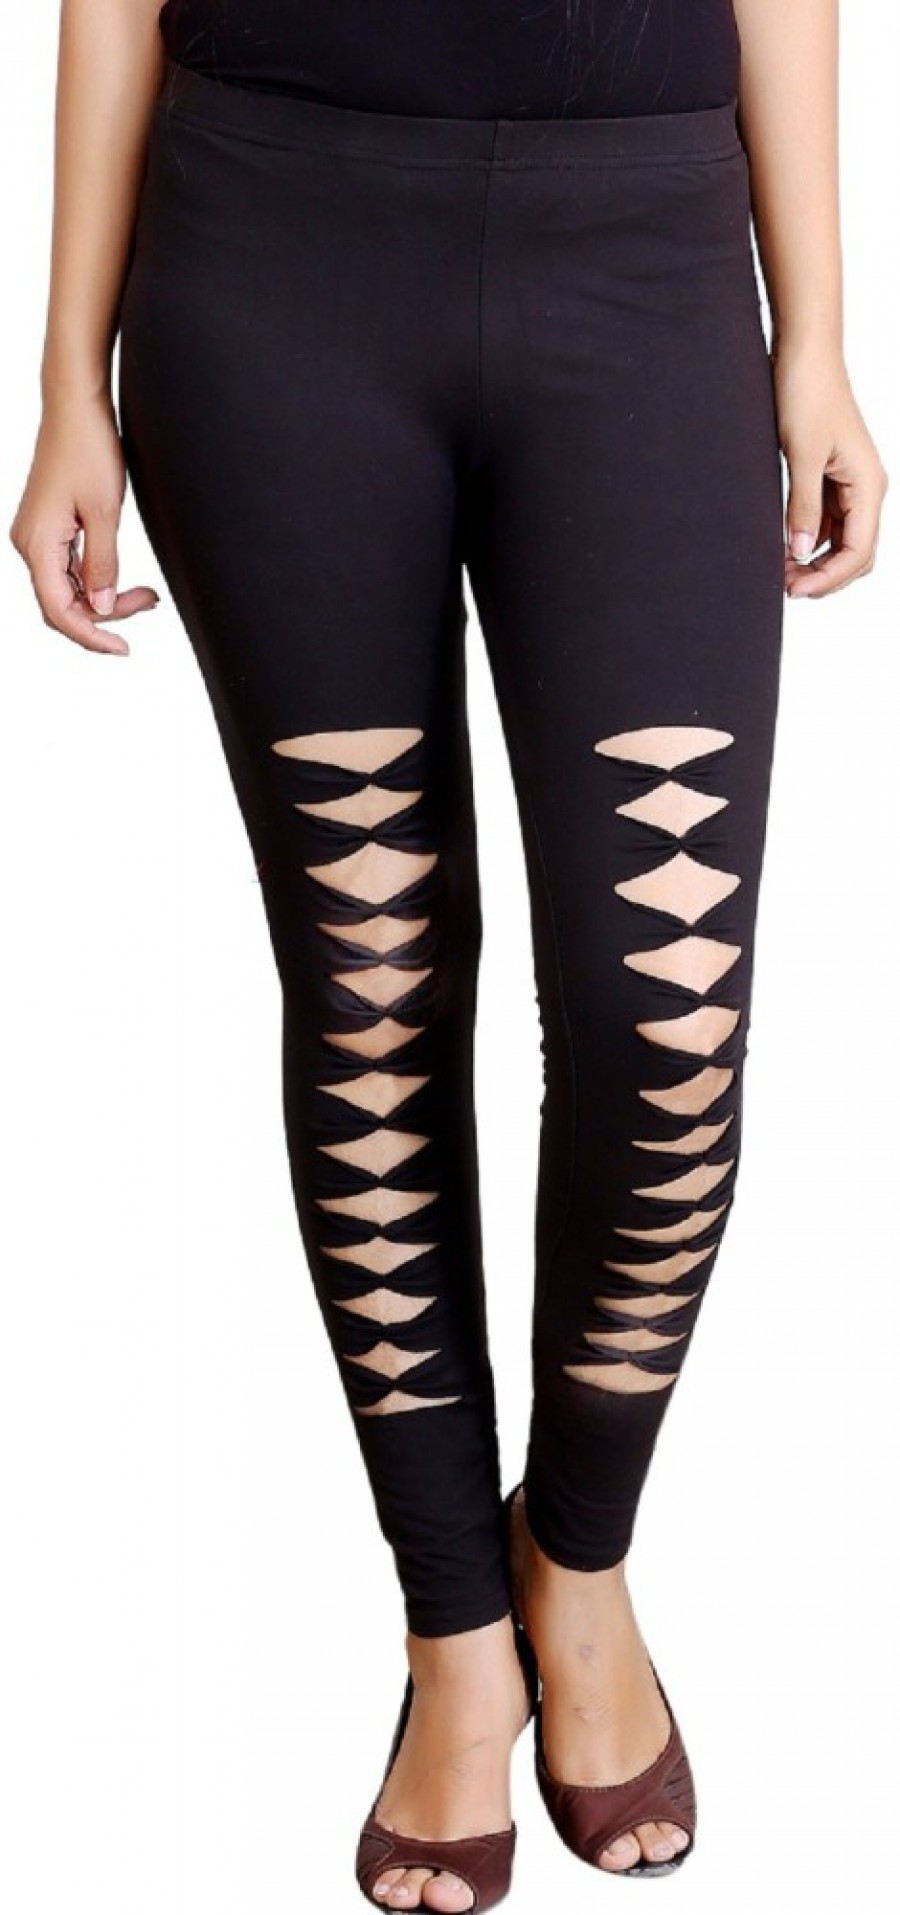 Buy Blinkin Women, Girls Black Leggings Online